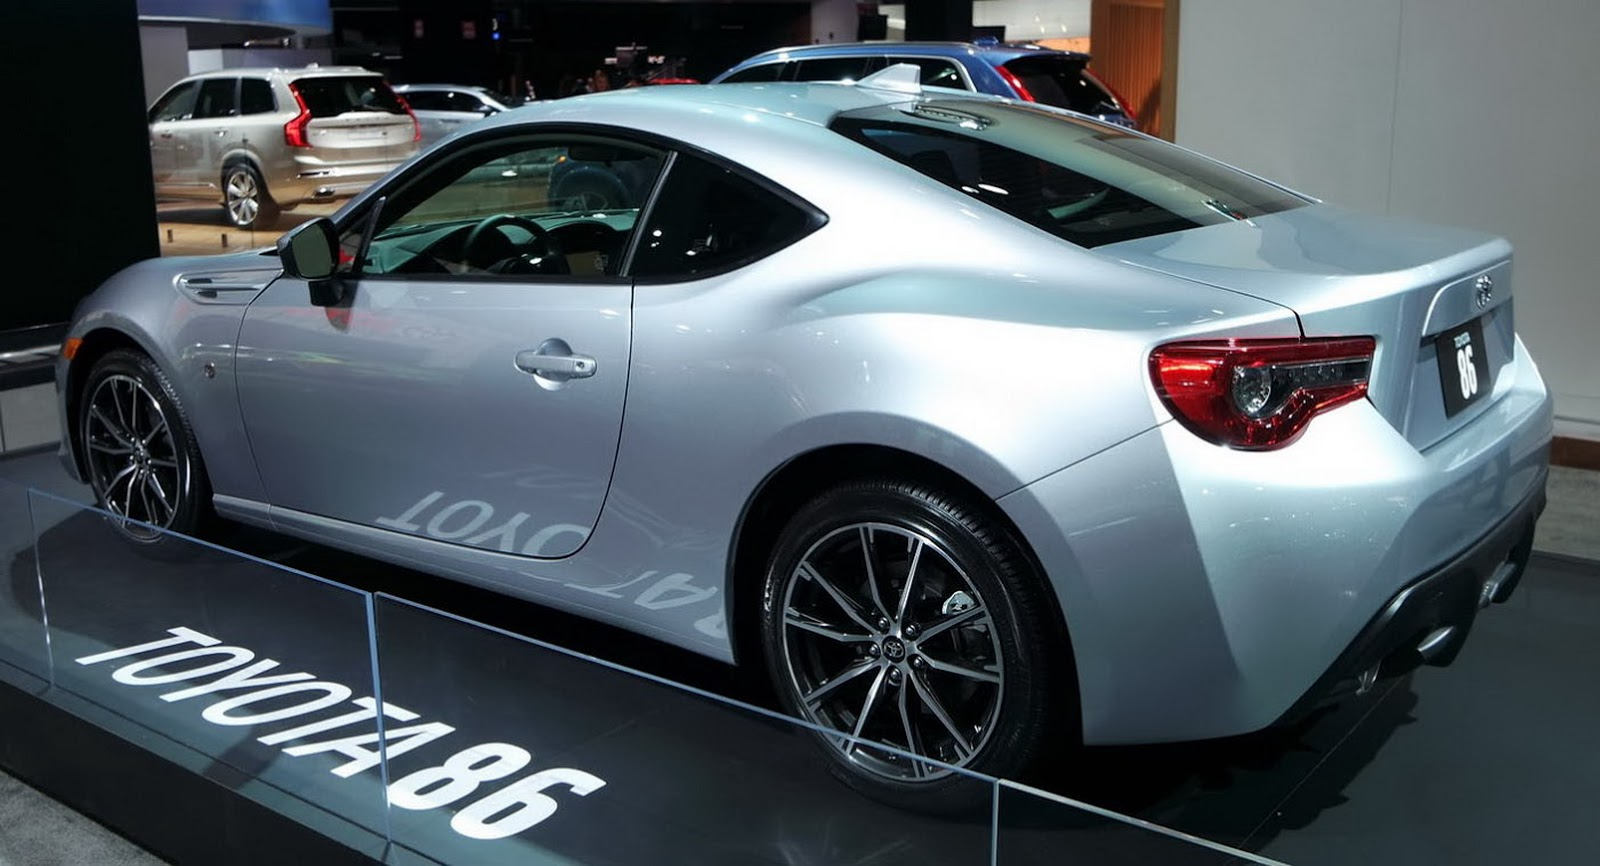 2017 Subaru Brz Vs 2017 Toyota 86 Which One Do You Like